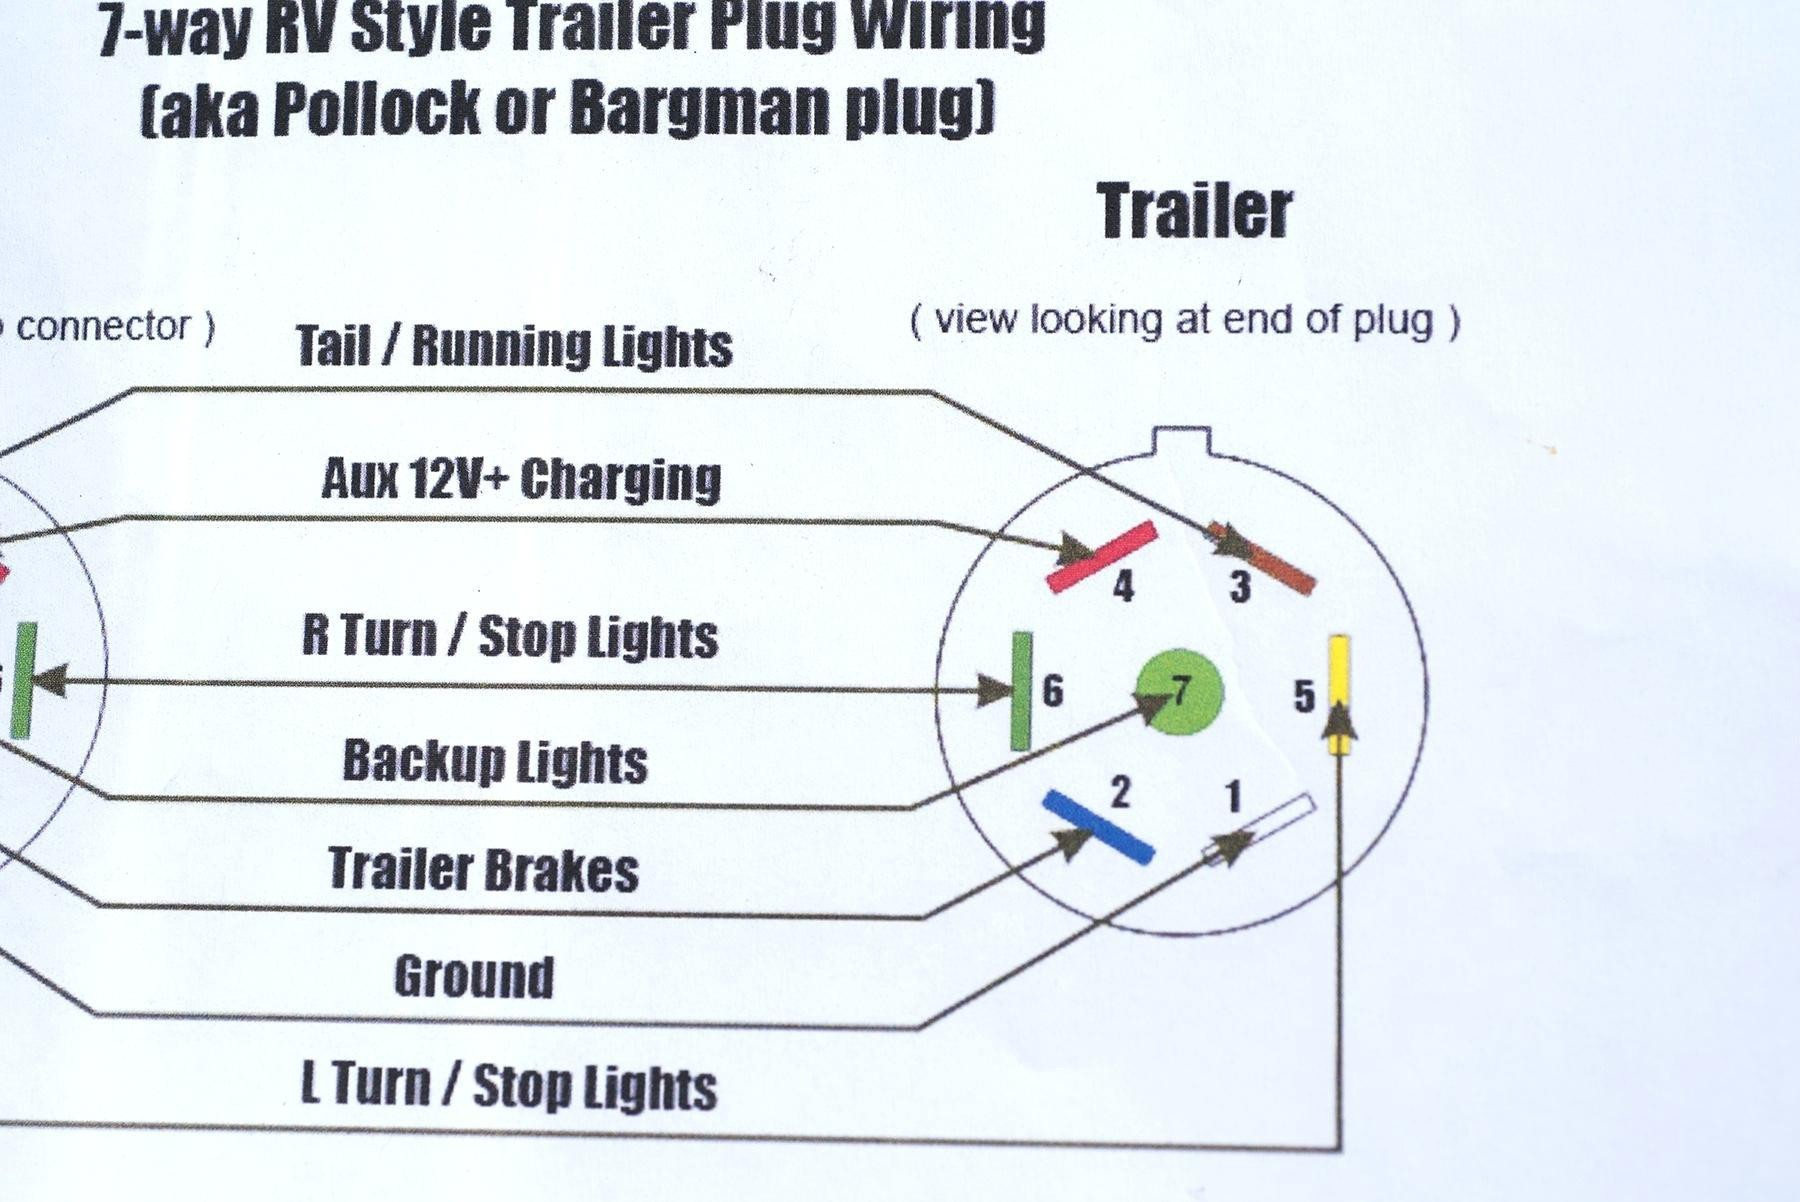 Trailer Wiring Diagram 4 Way Round - Detailed Wiring Diagram - Wiring Diagram For Boat Trailer